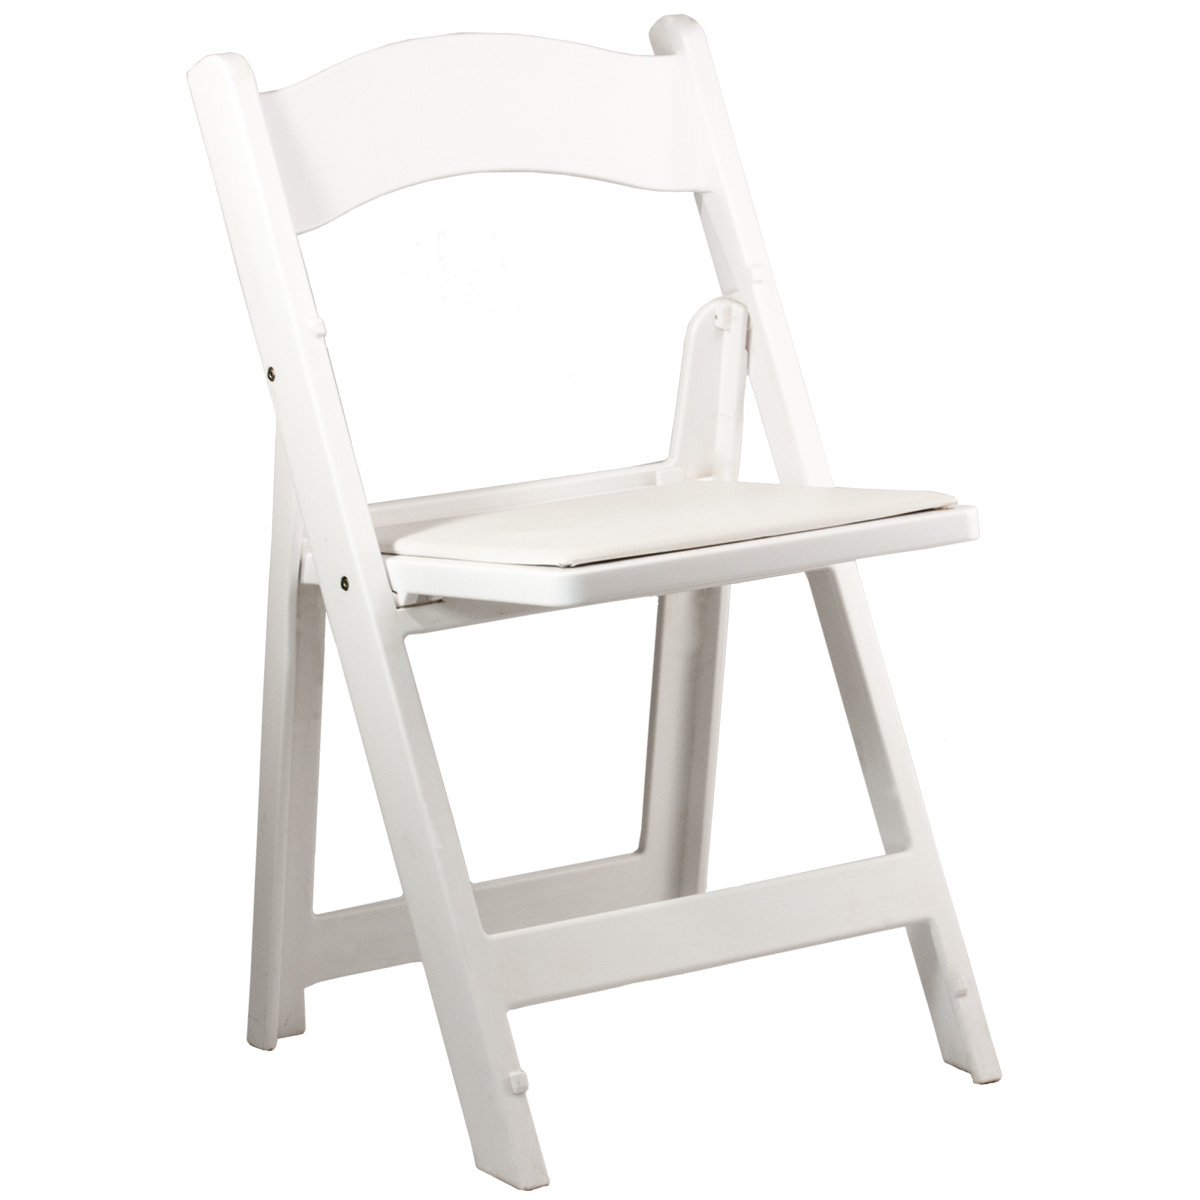 Chairs Folding Folding Chair Padded White